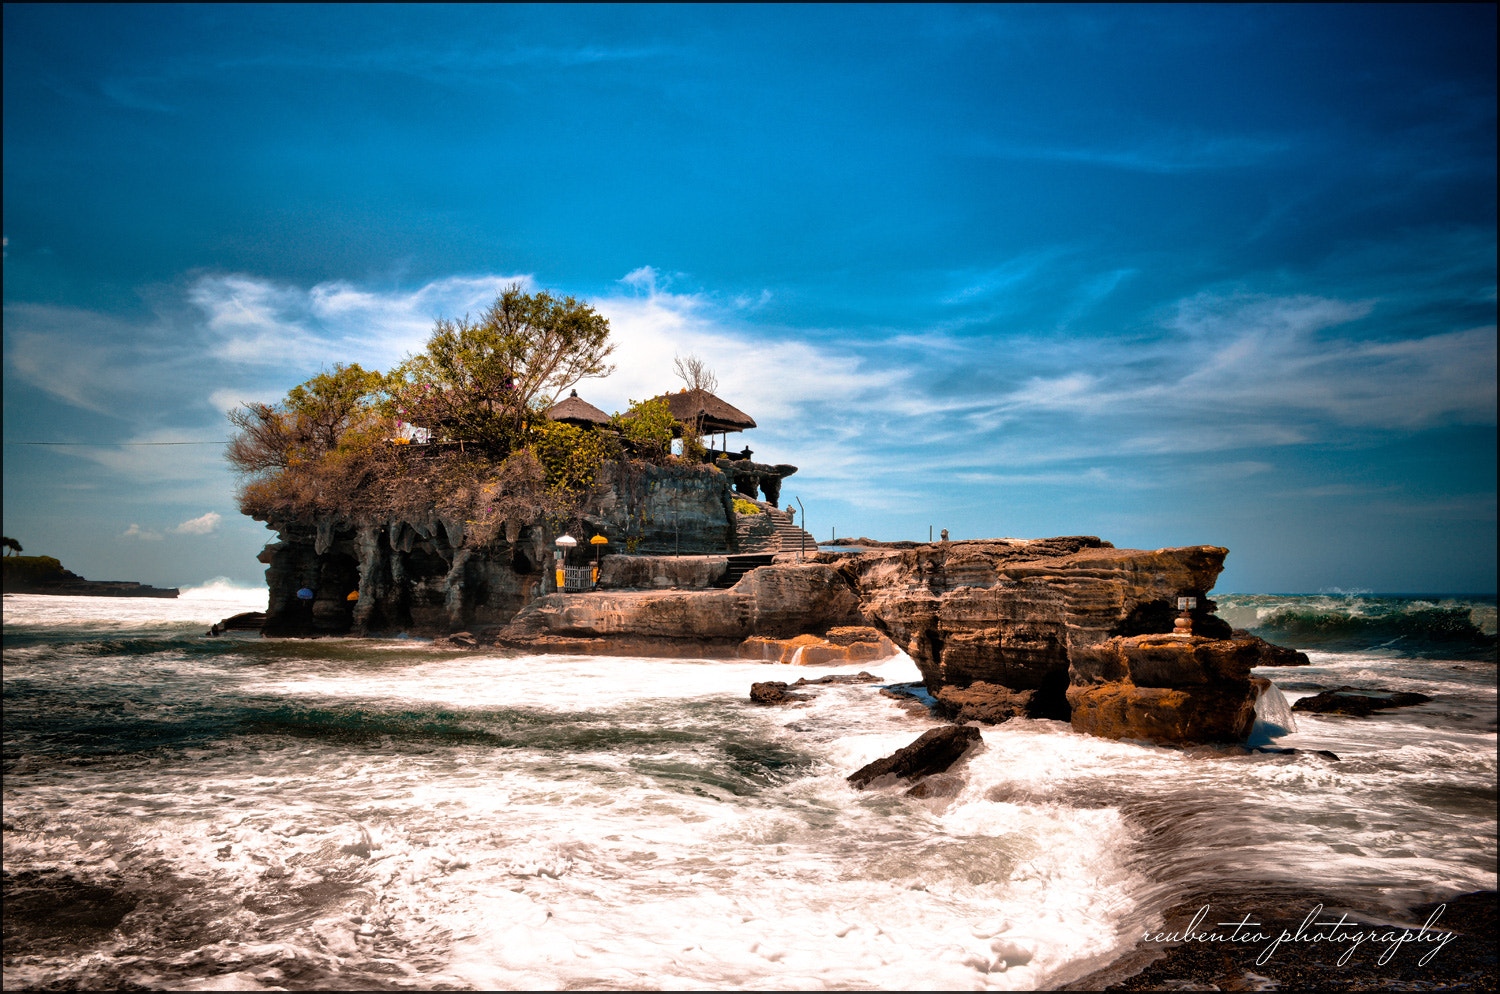 Photograph Tanah Lot Temple by Reuben Teo on 500px